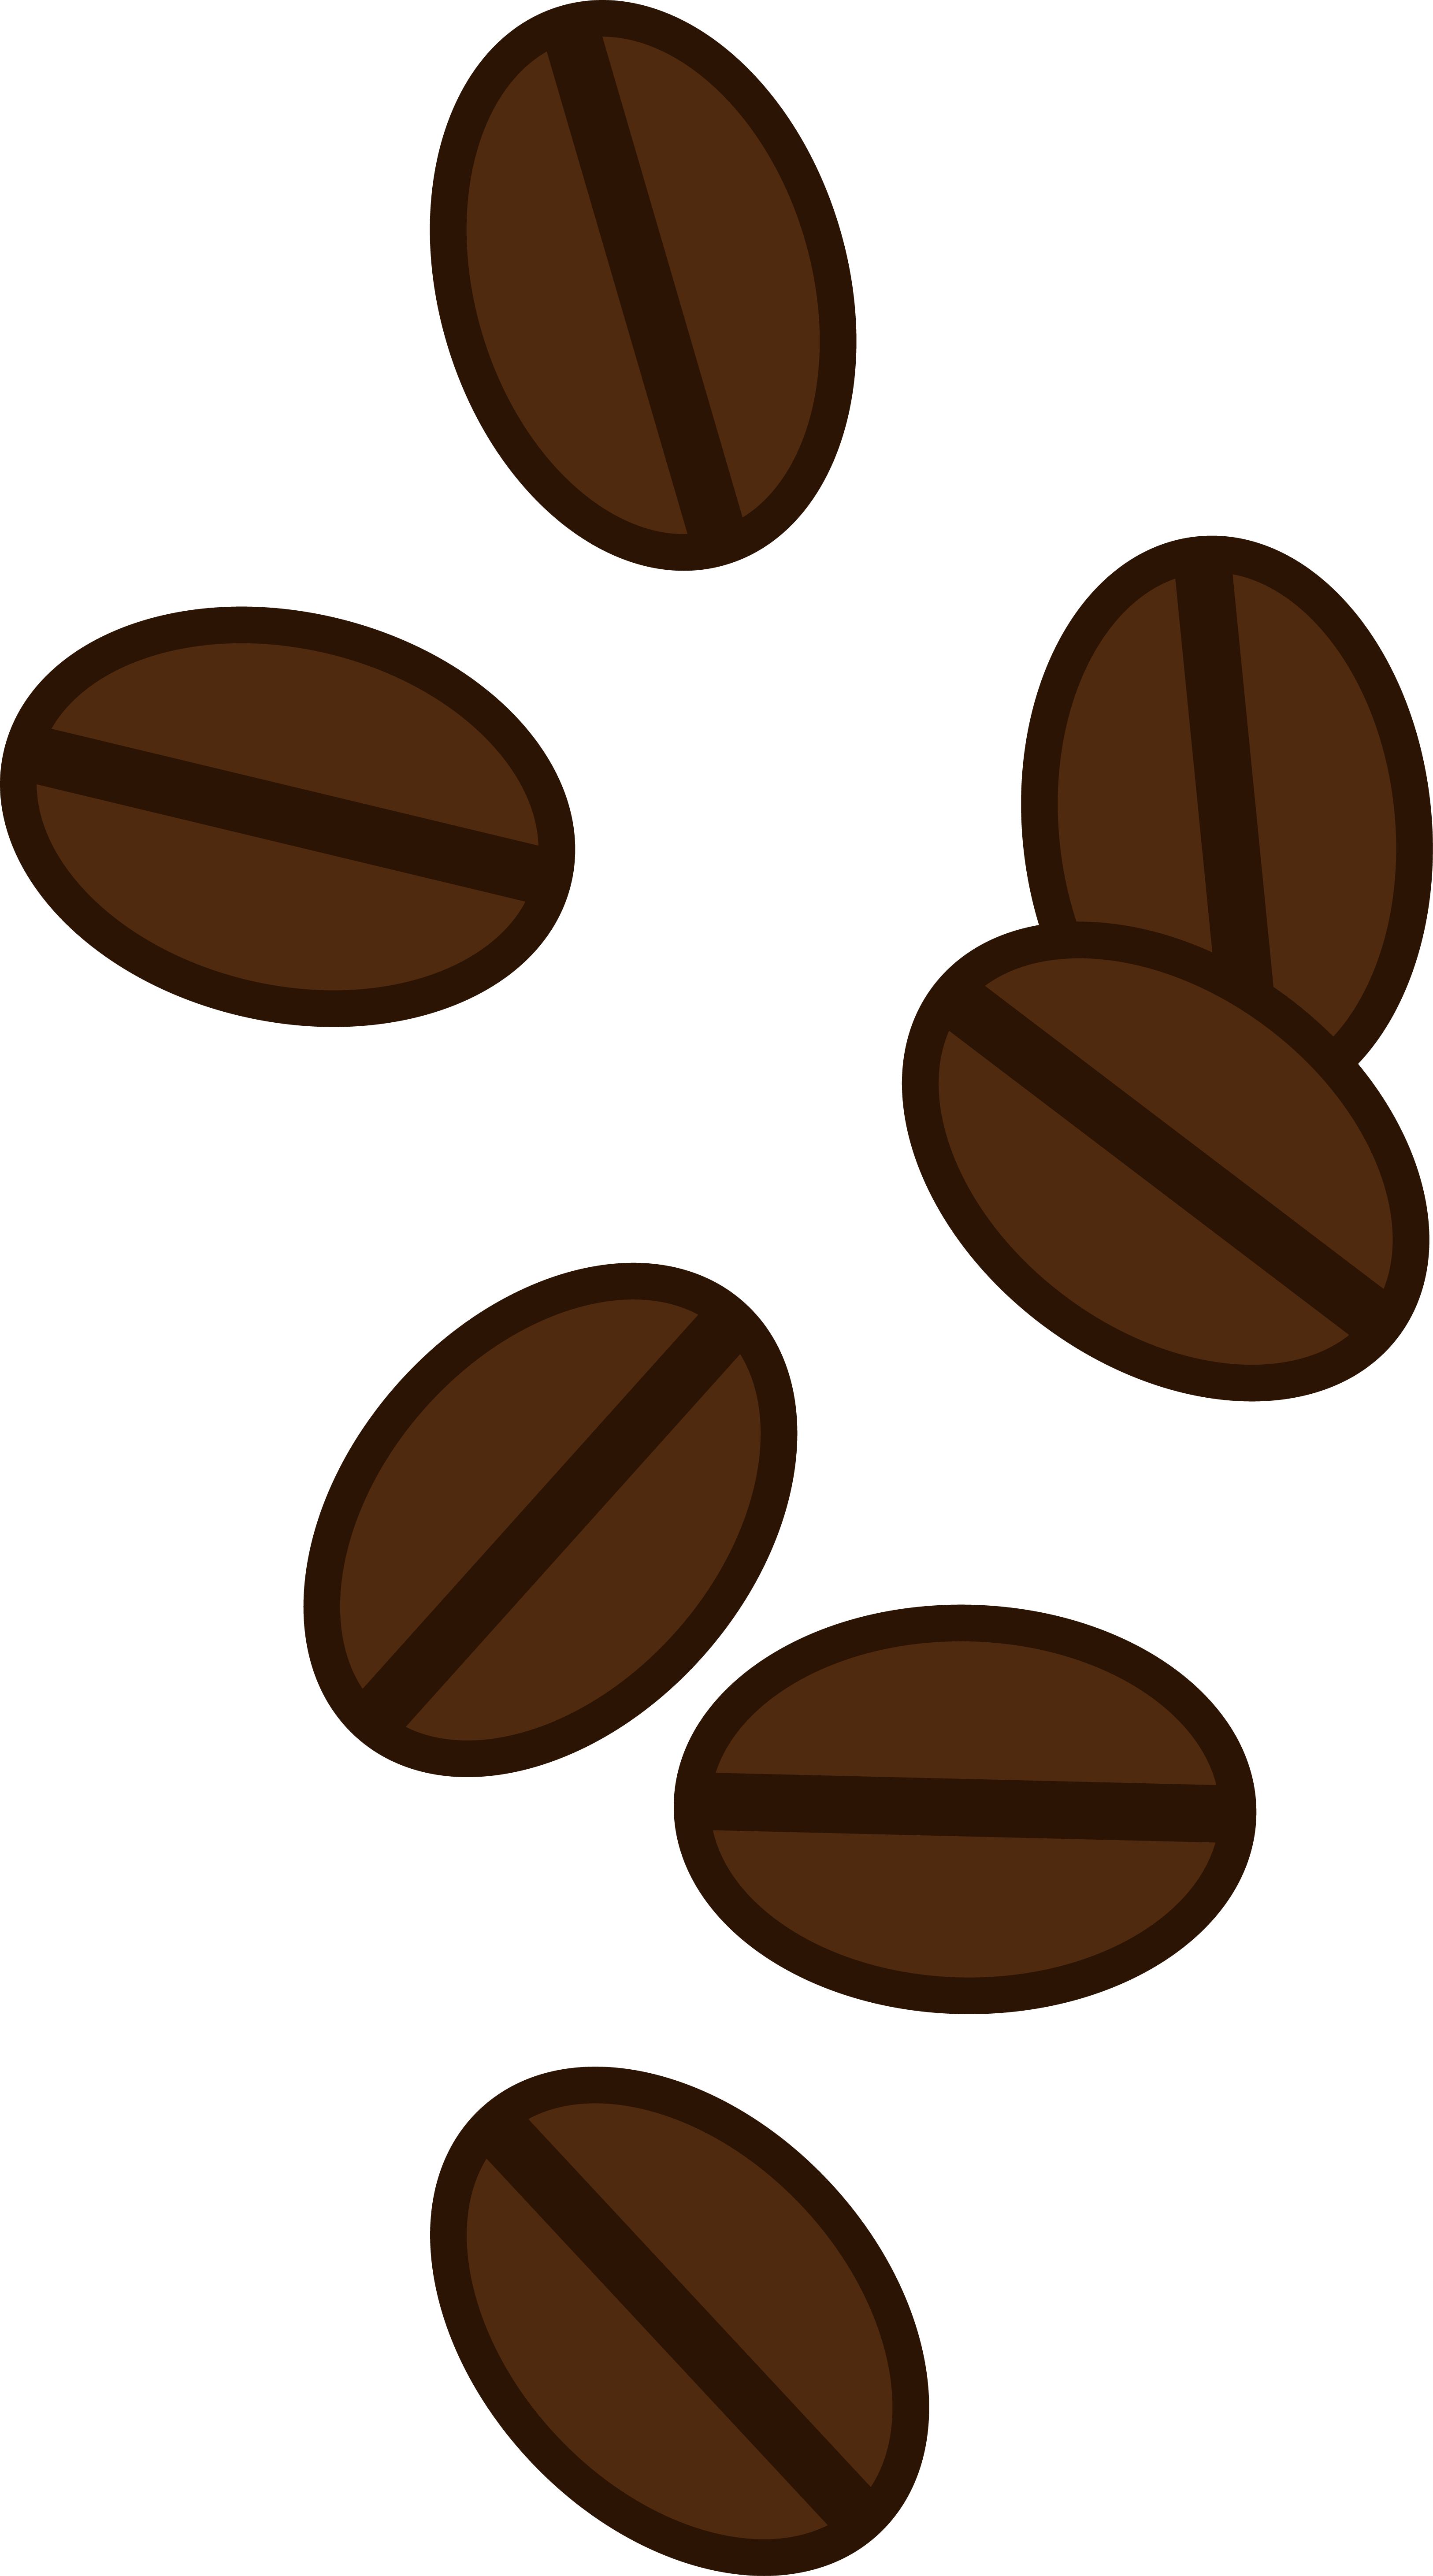 Coffee bean vector png. Owl clipart